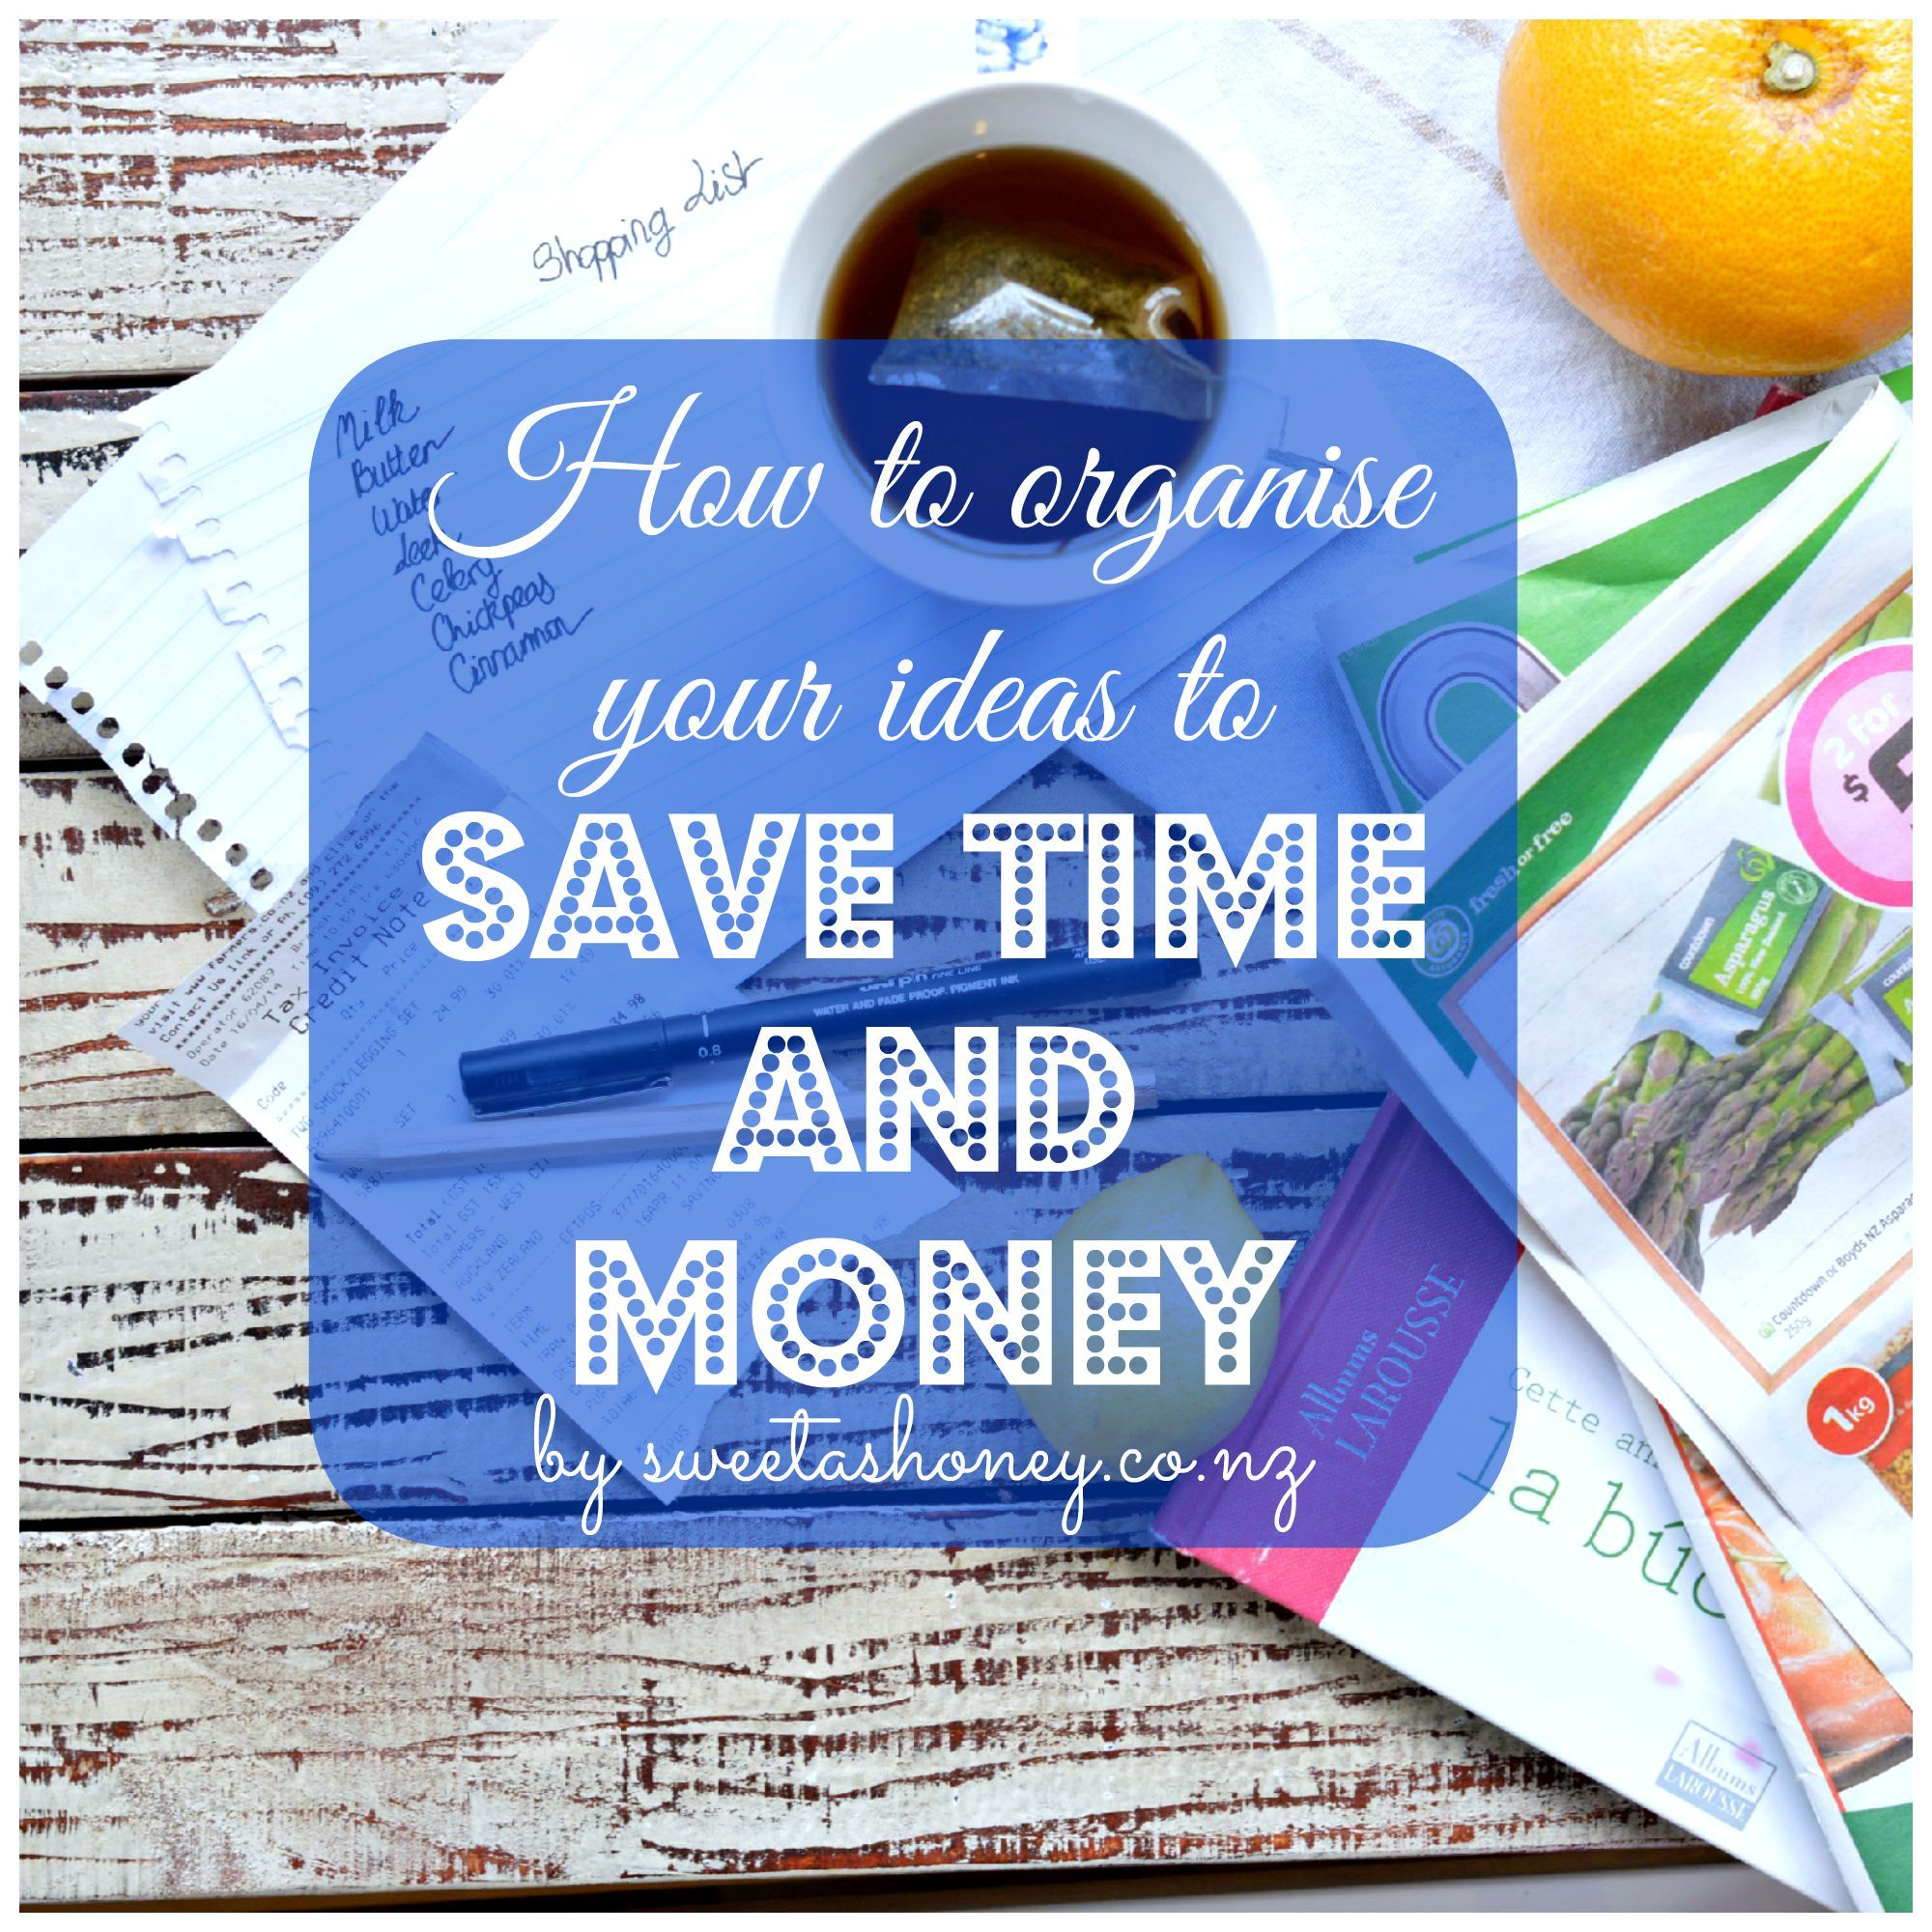 how to organise your ideas to save time and money